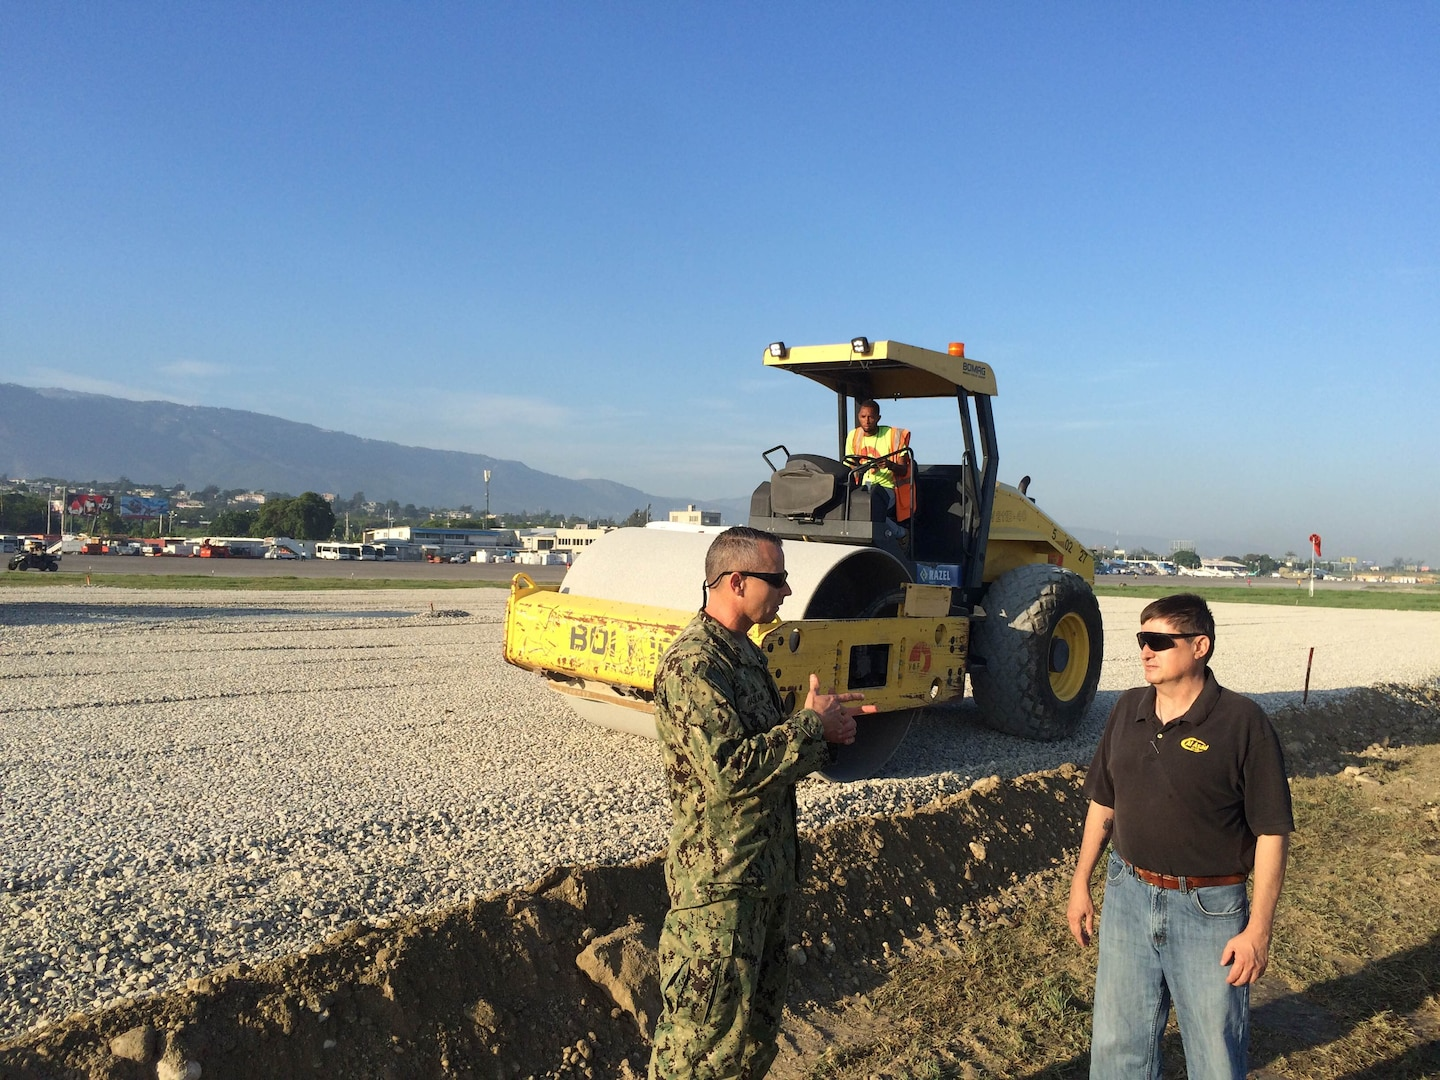 Navy Capt. Paul Haslam (left), commander of the DLA Rapid Deployment Team, discusses a project to build a helicopter pad with Troop Support liaison officer Robert Cunningham, Port-au-Prince, Haiti, October 2016.